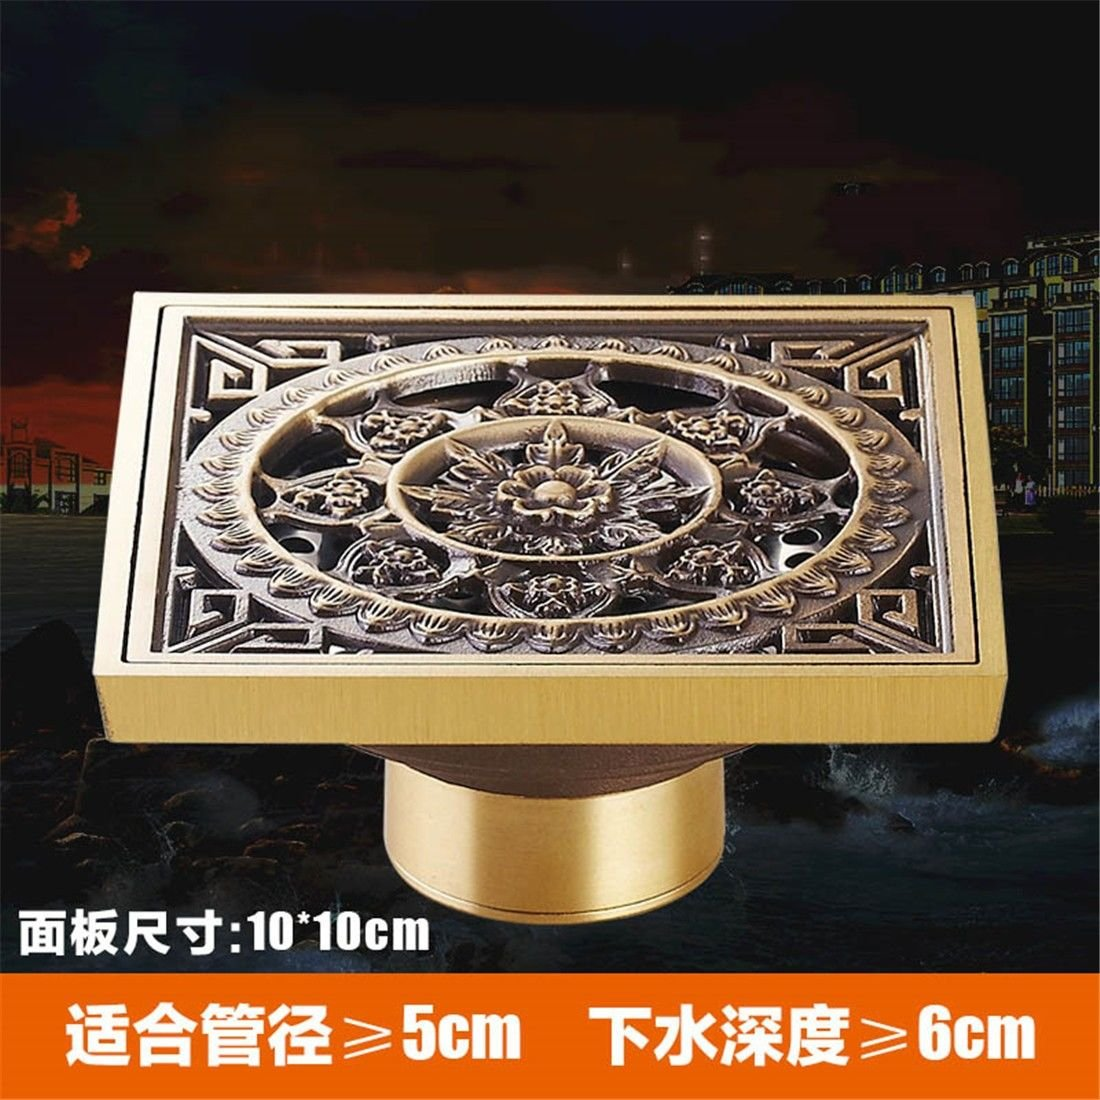 LINA bathroom accessories Antique Copper floor drain anti-smelly copper floor drain core toilet washing Machine special drainage, F